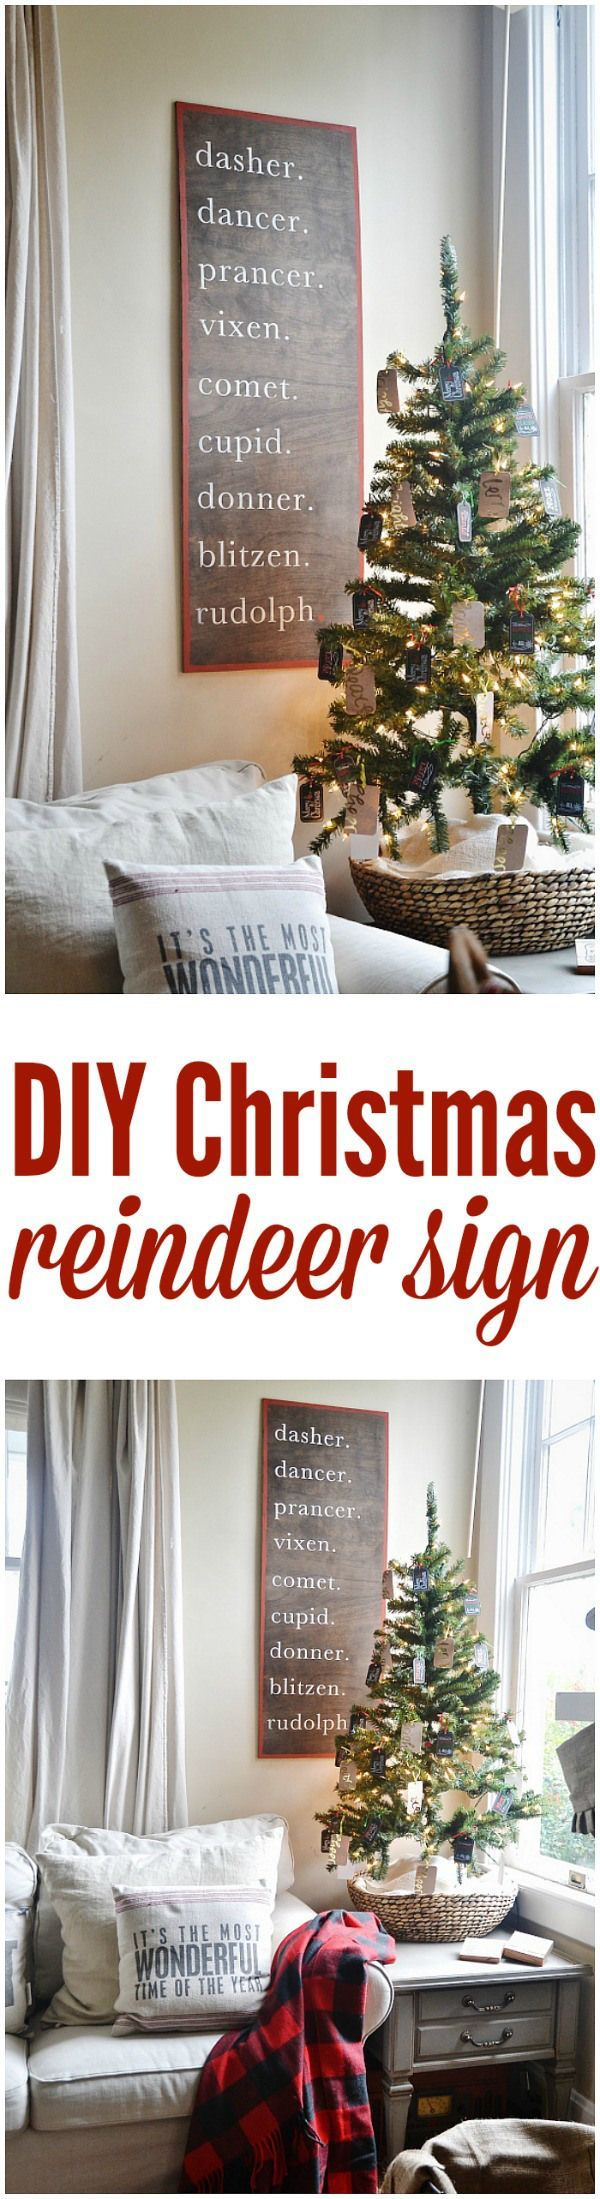 running shoes deals online Super easy DIY reindeer sign  See how to make your own for your Christmas decor